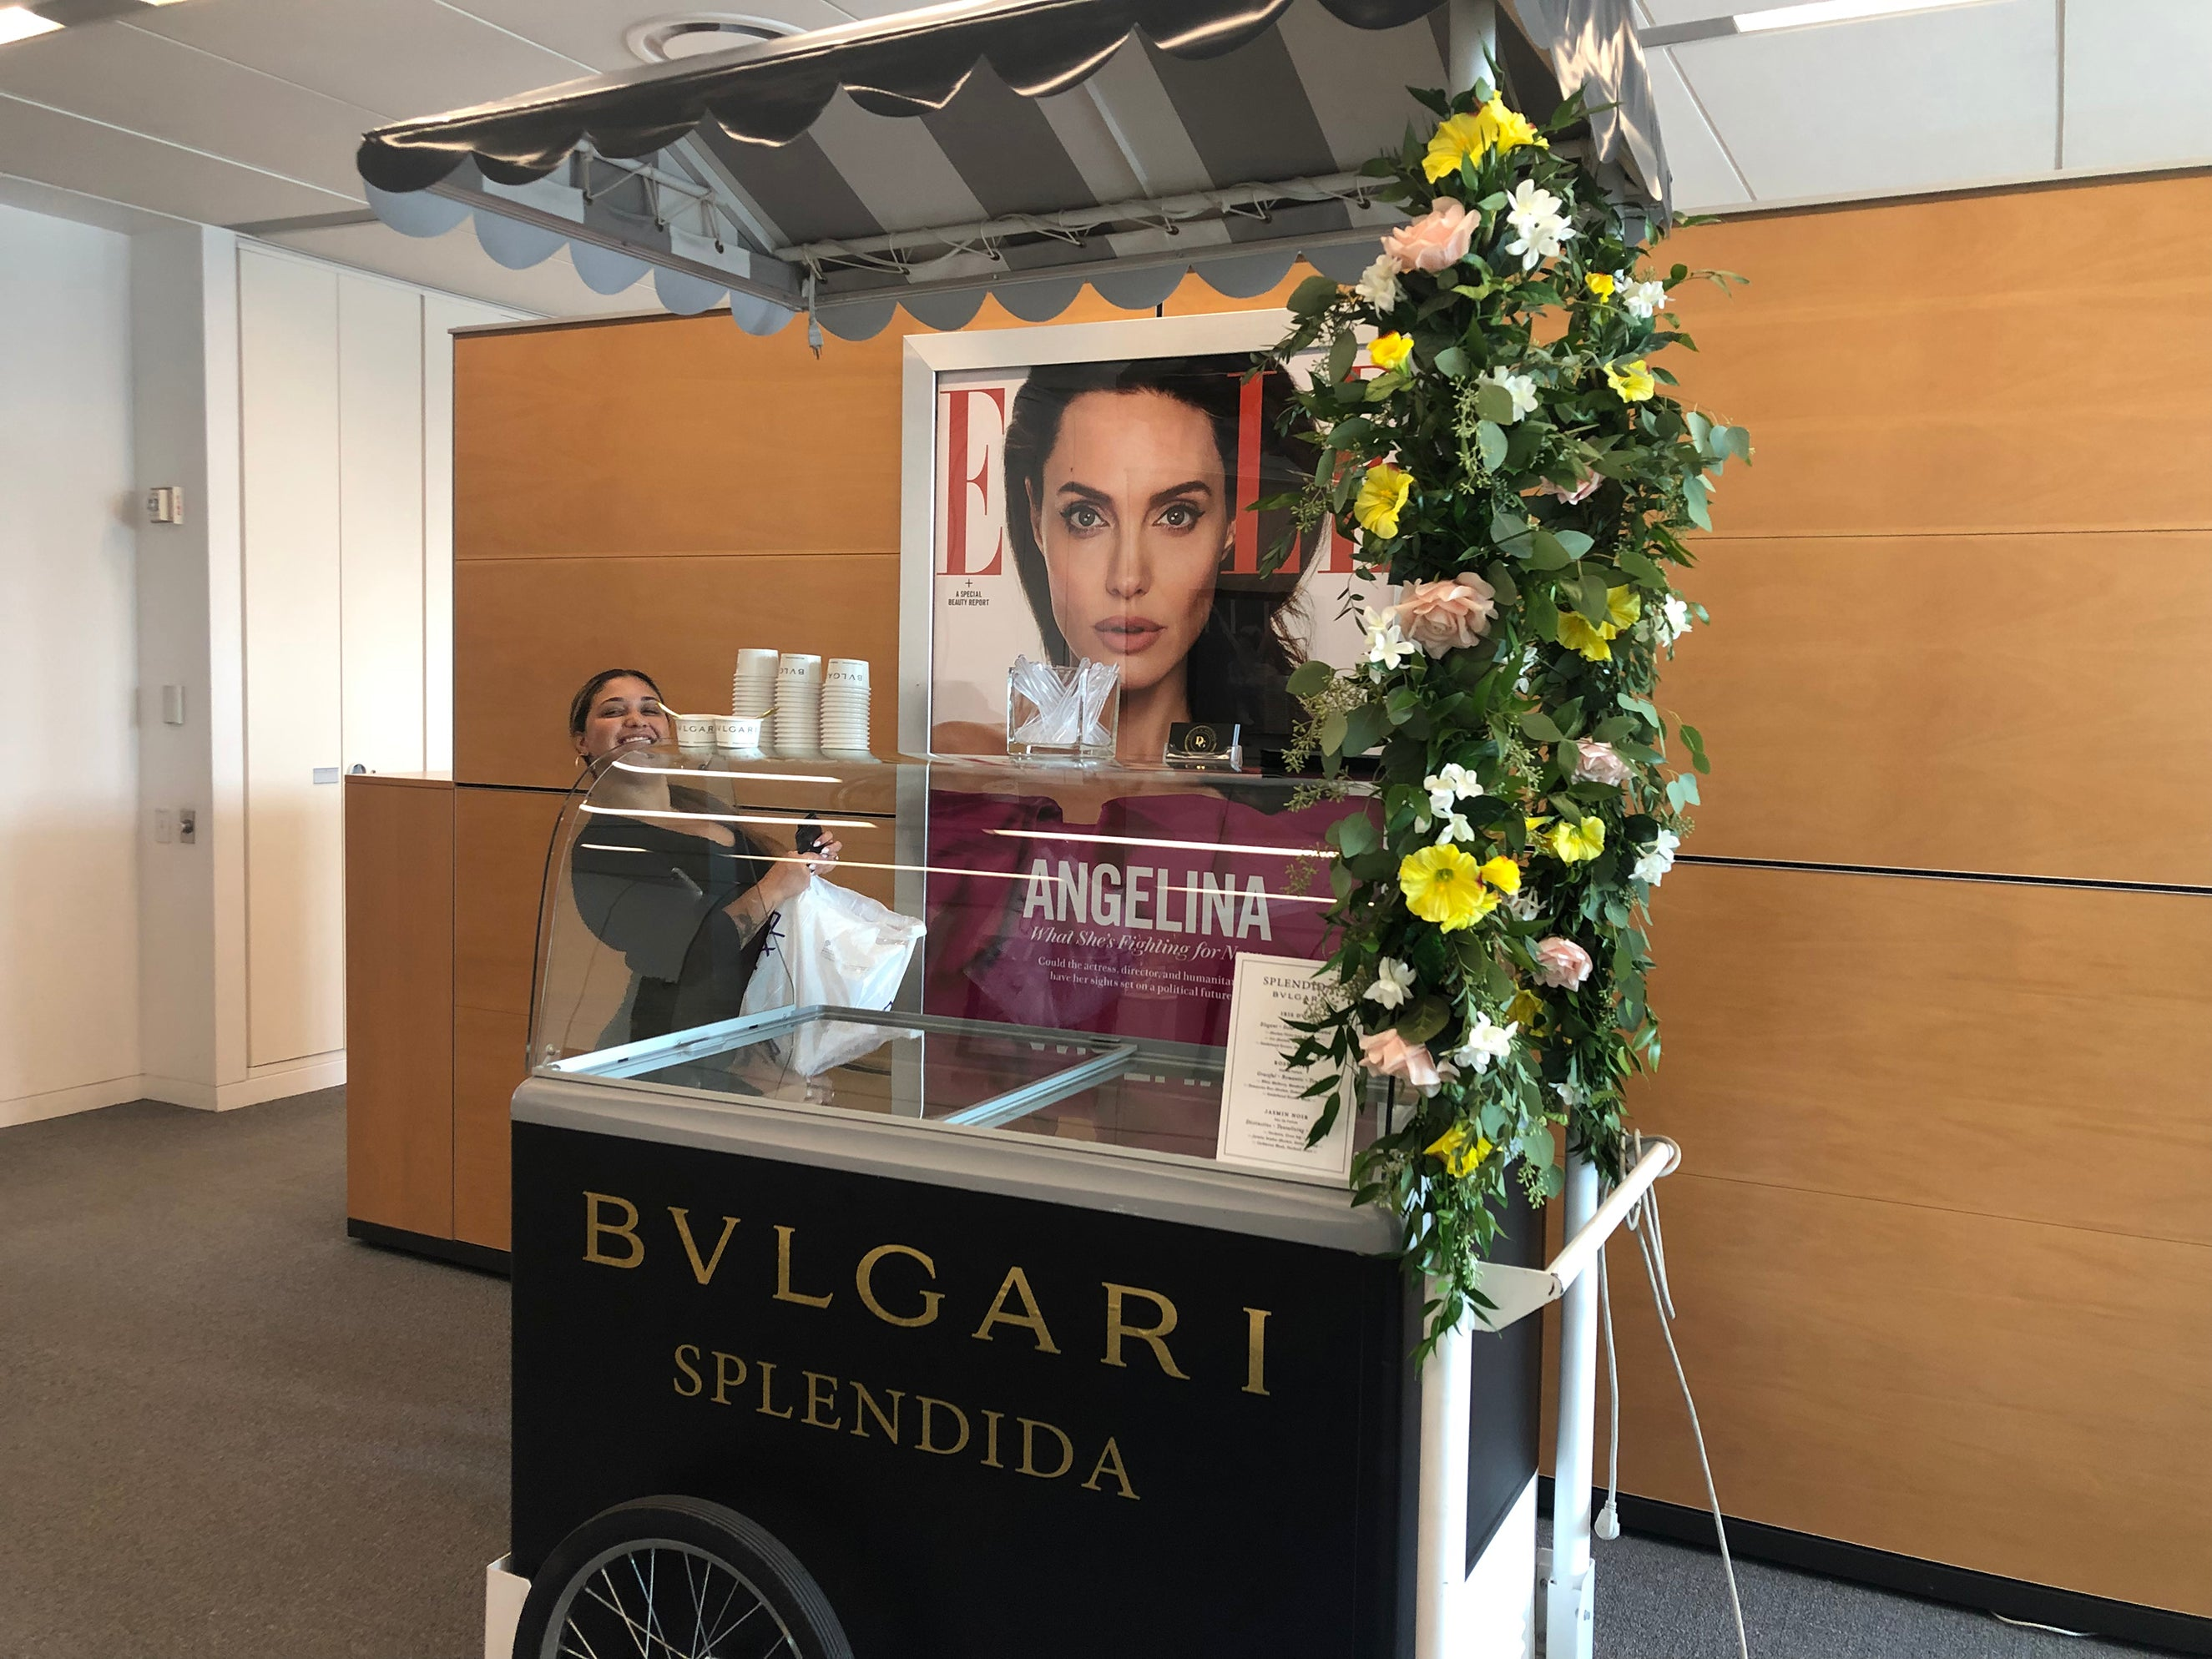 Bvlgari Splendida Summer